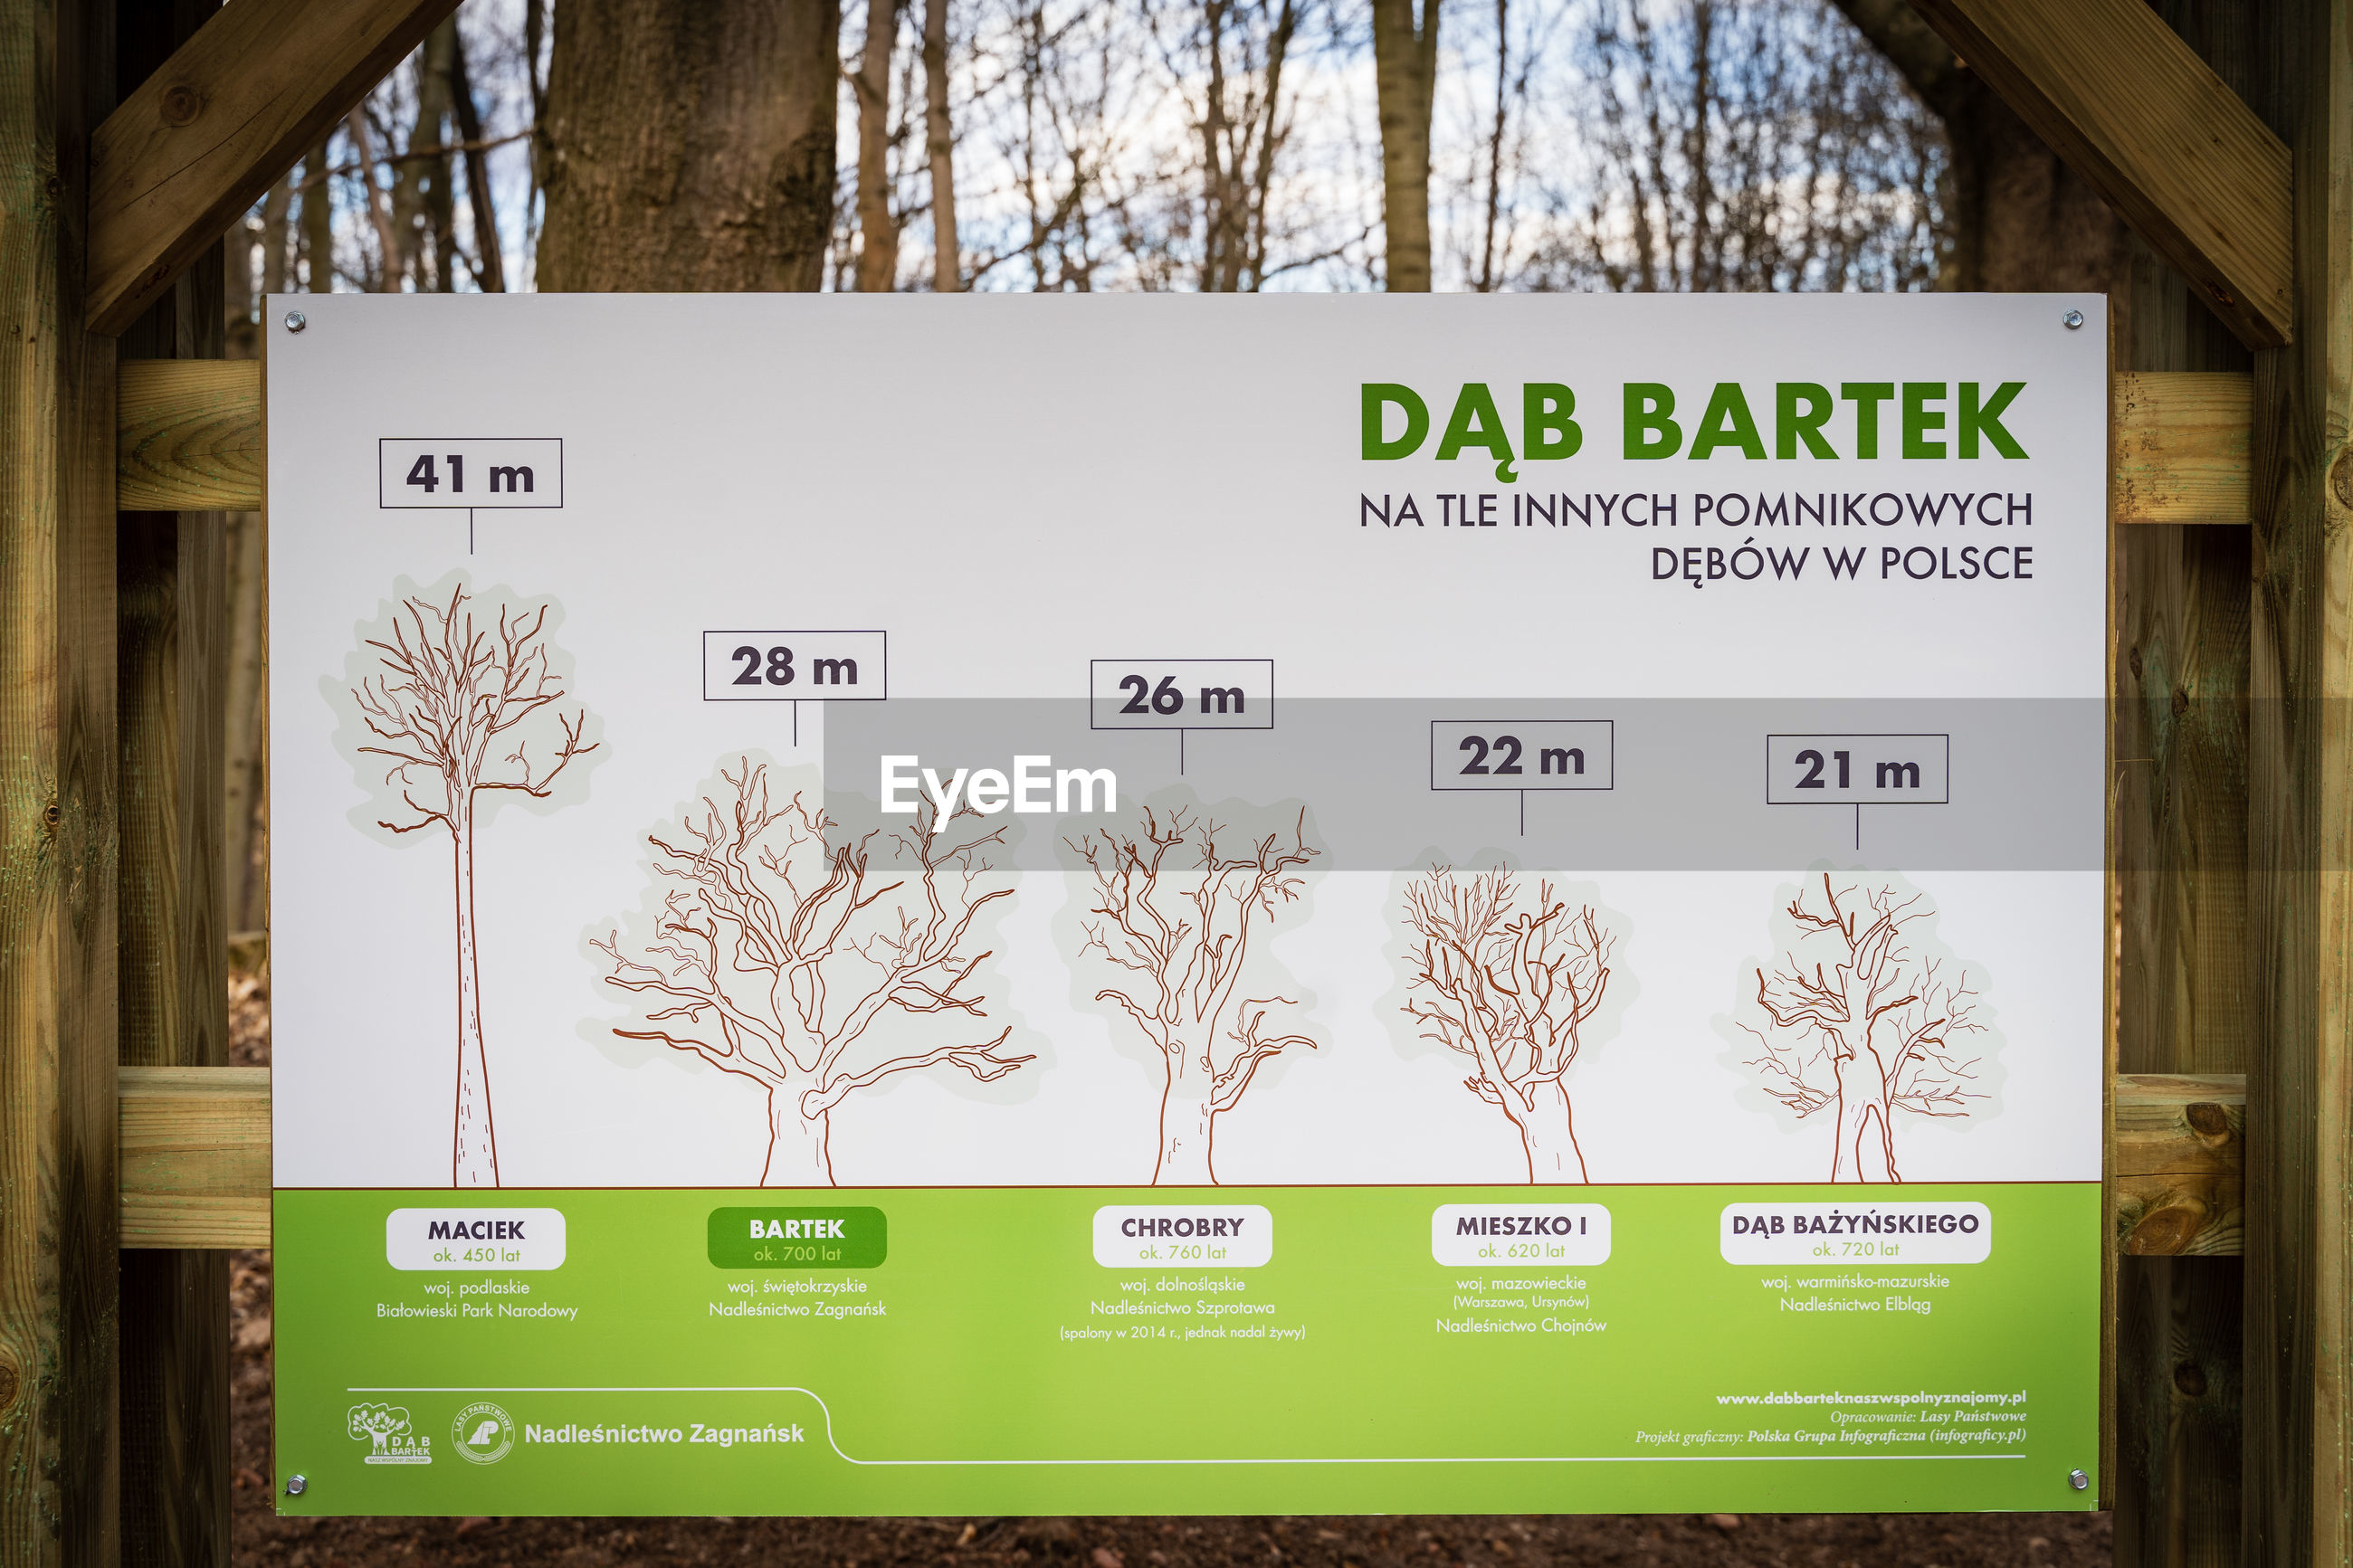 CLOSE-UP OF INFORMATION SIGN ON TREE